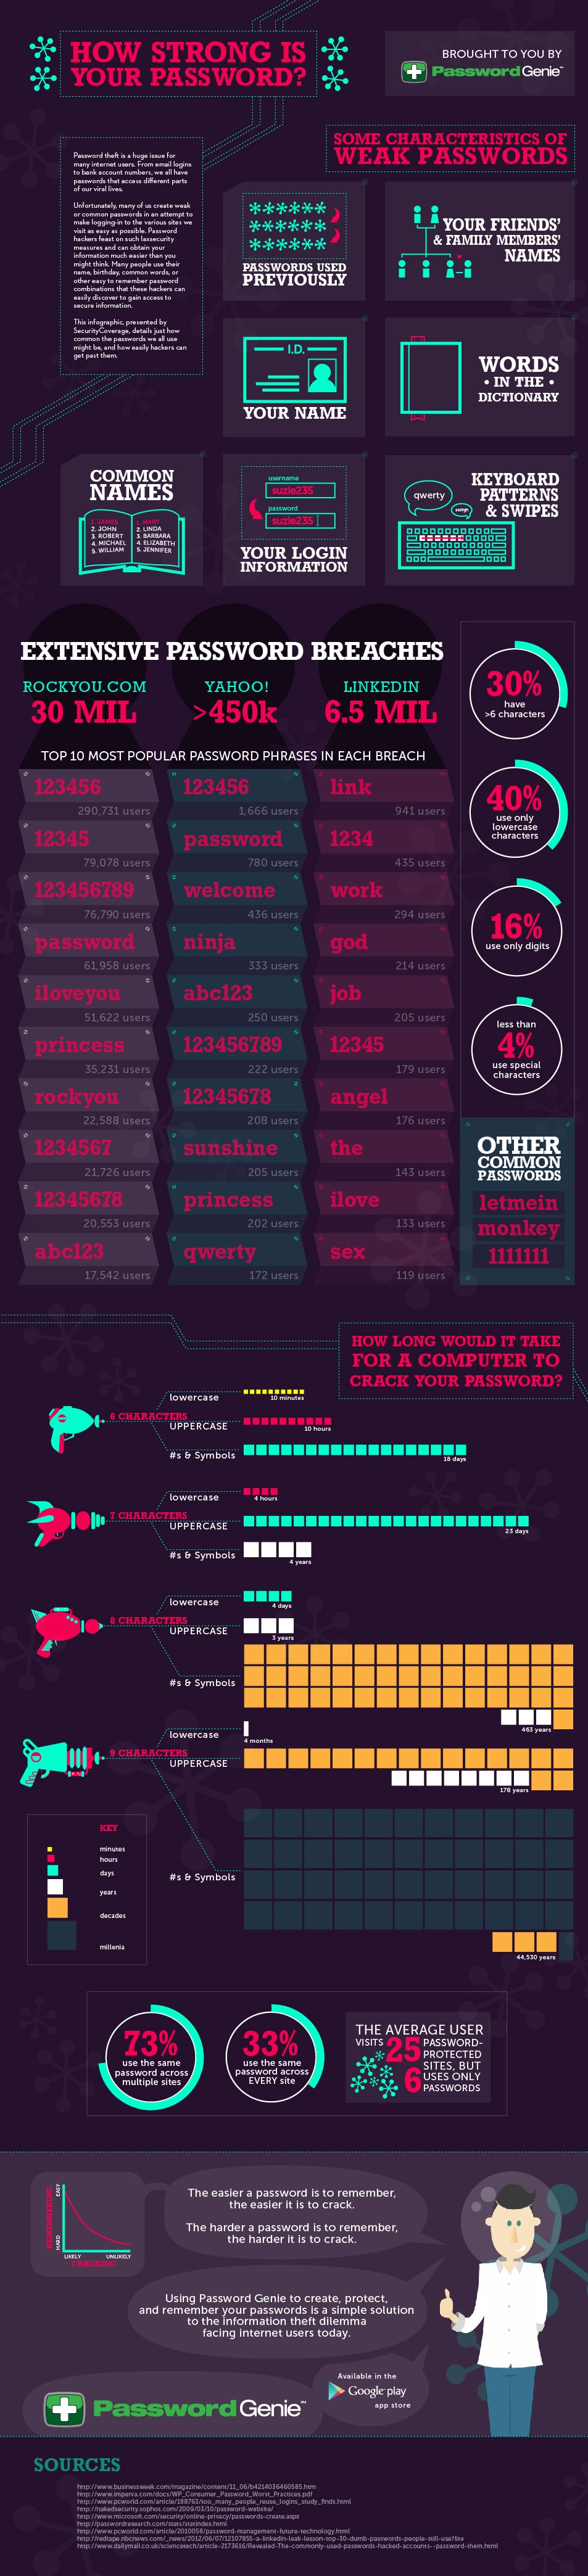 password-strength-security-breach-infographic